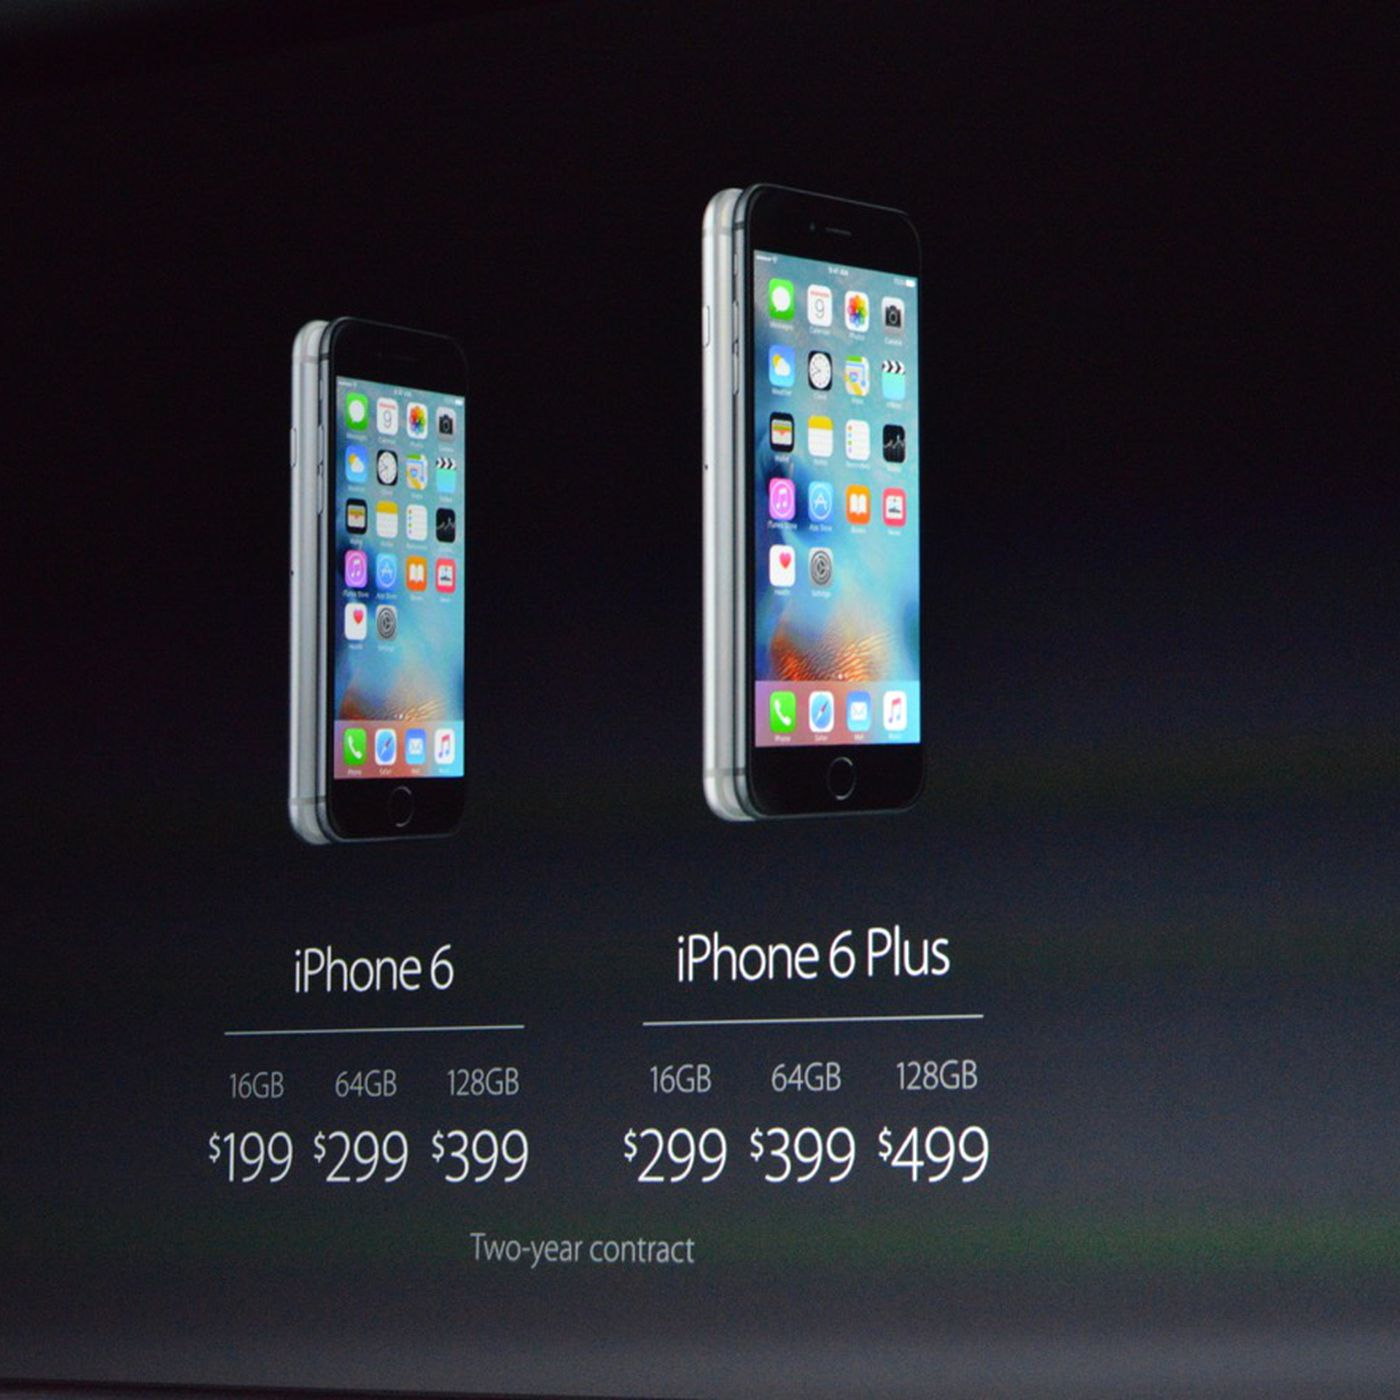 iPhone 6S release date September 25th, prices start at $199